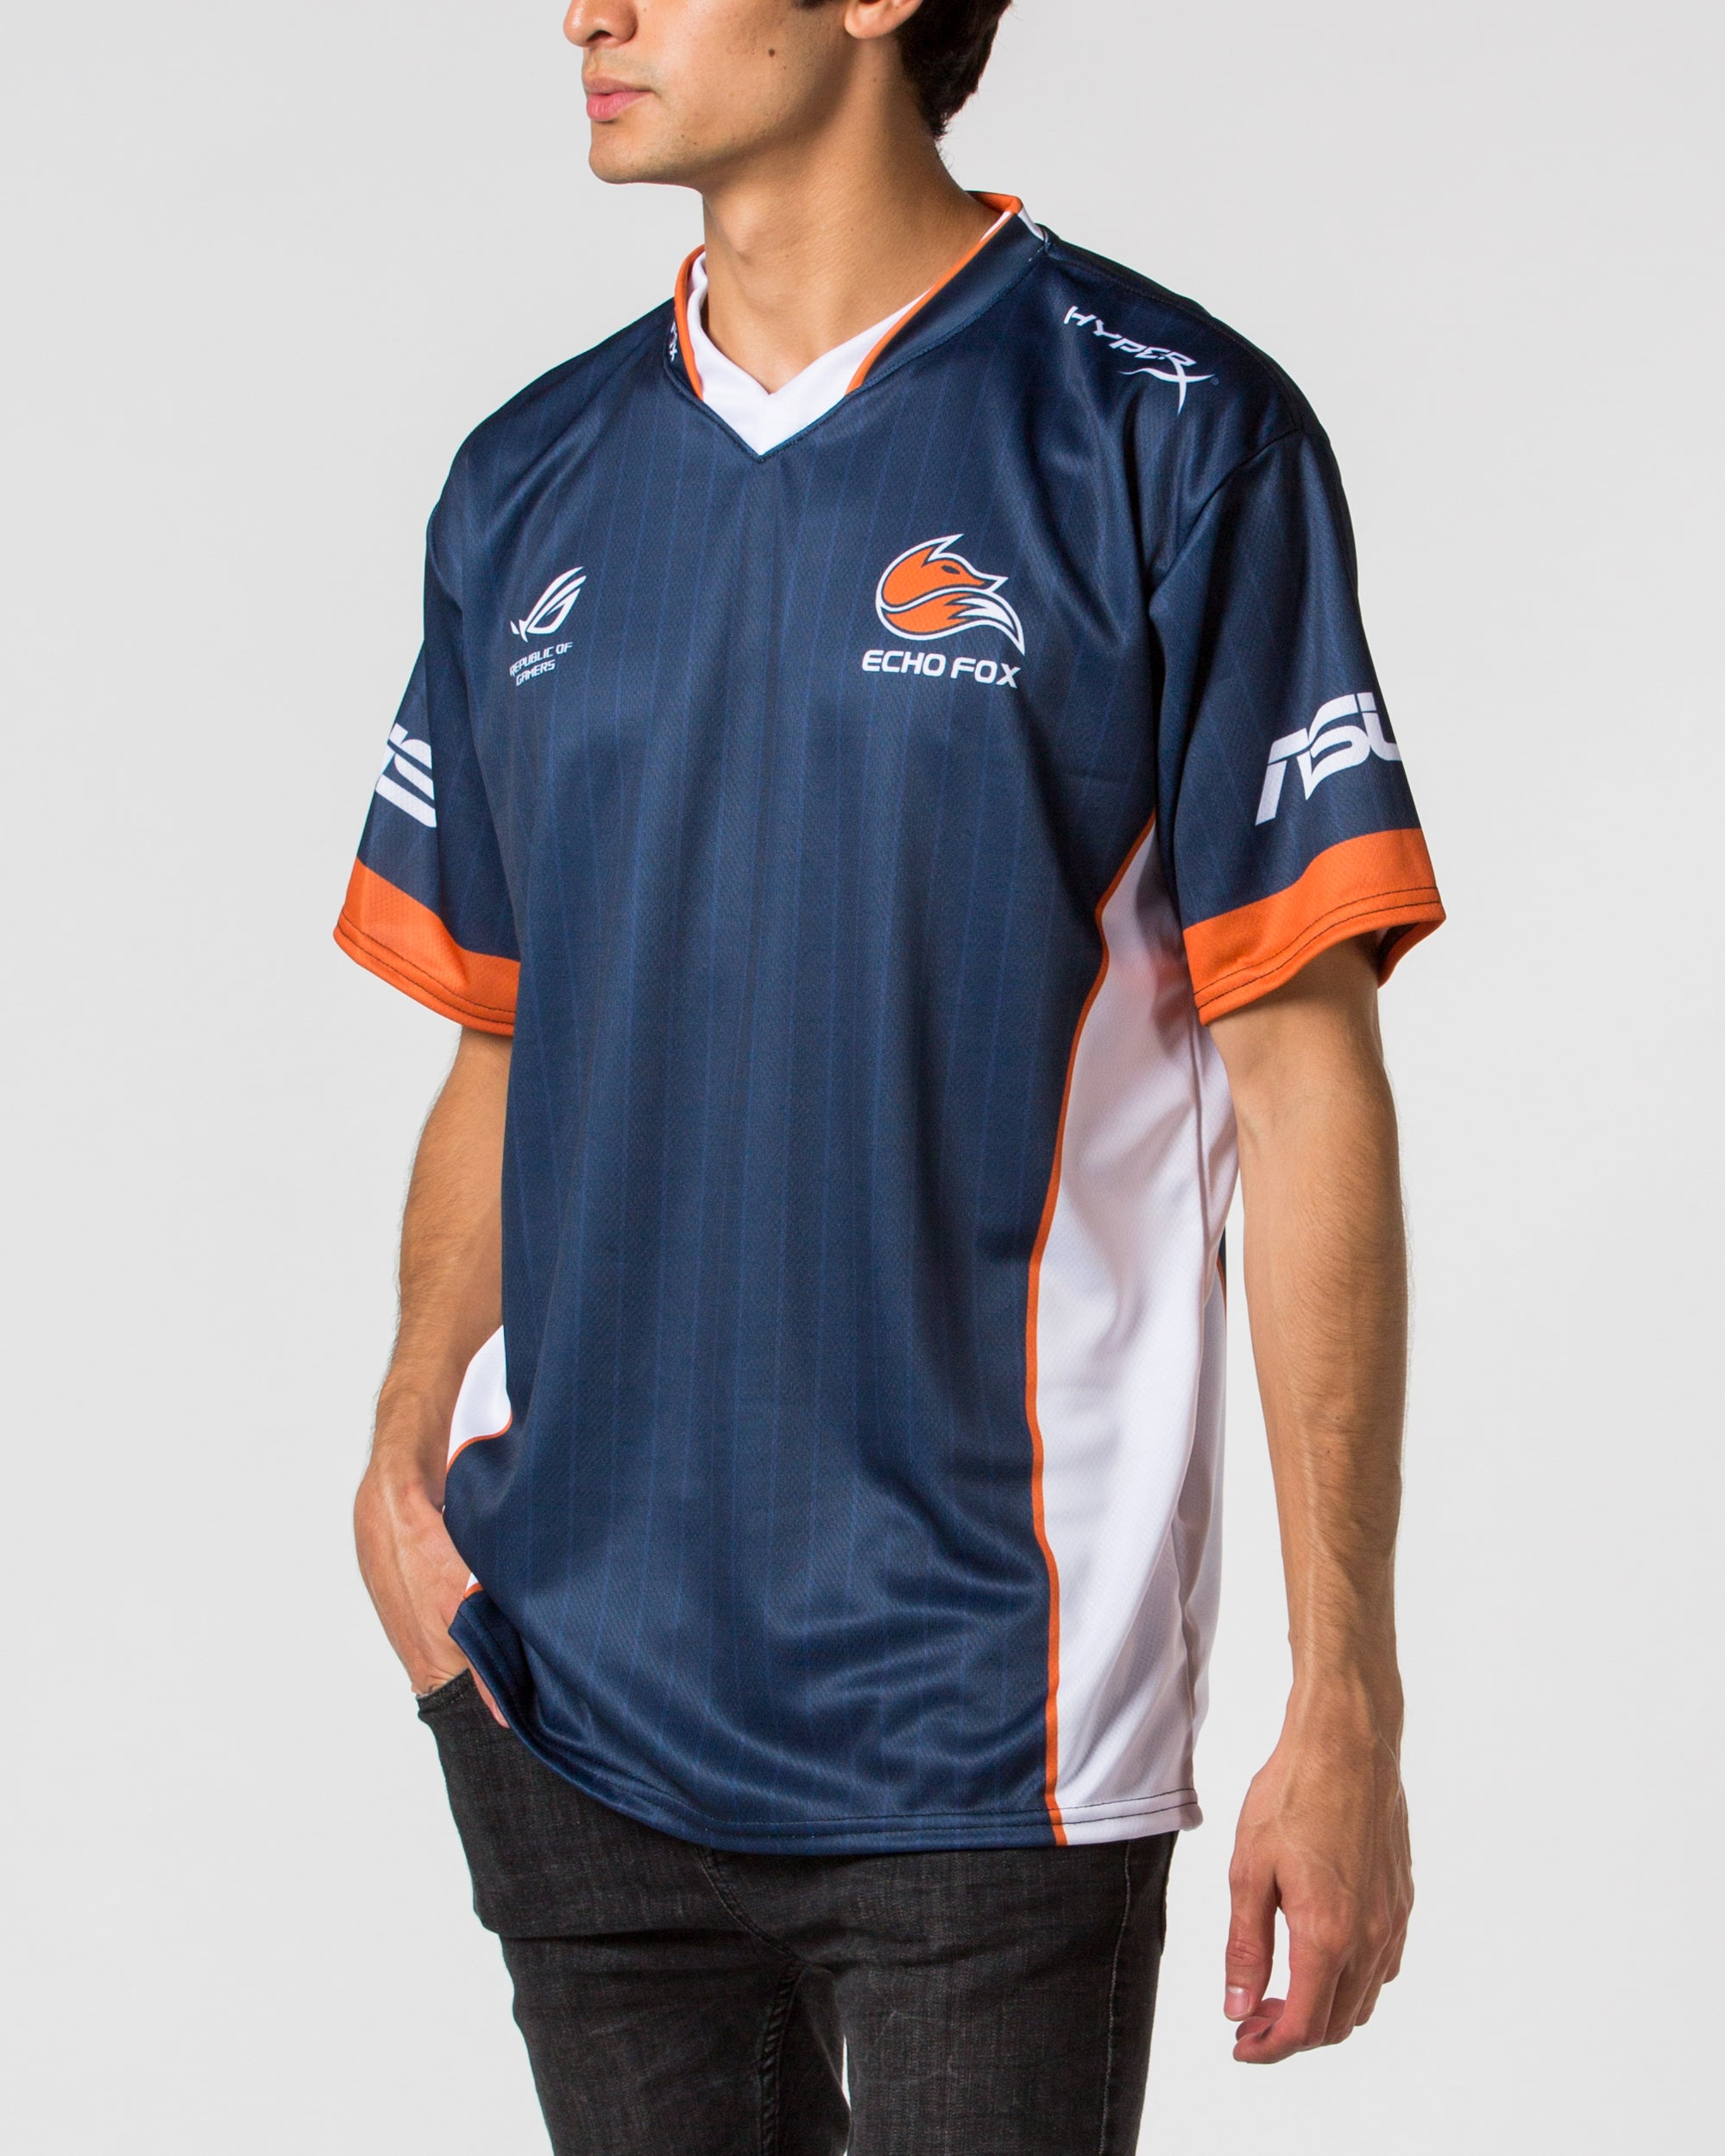 Echo Fox 2018 Fall Jersey